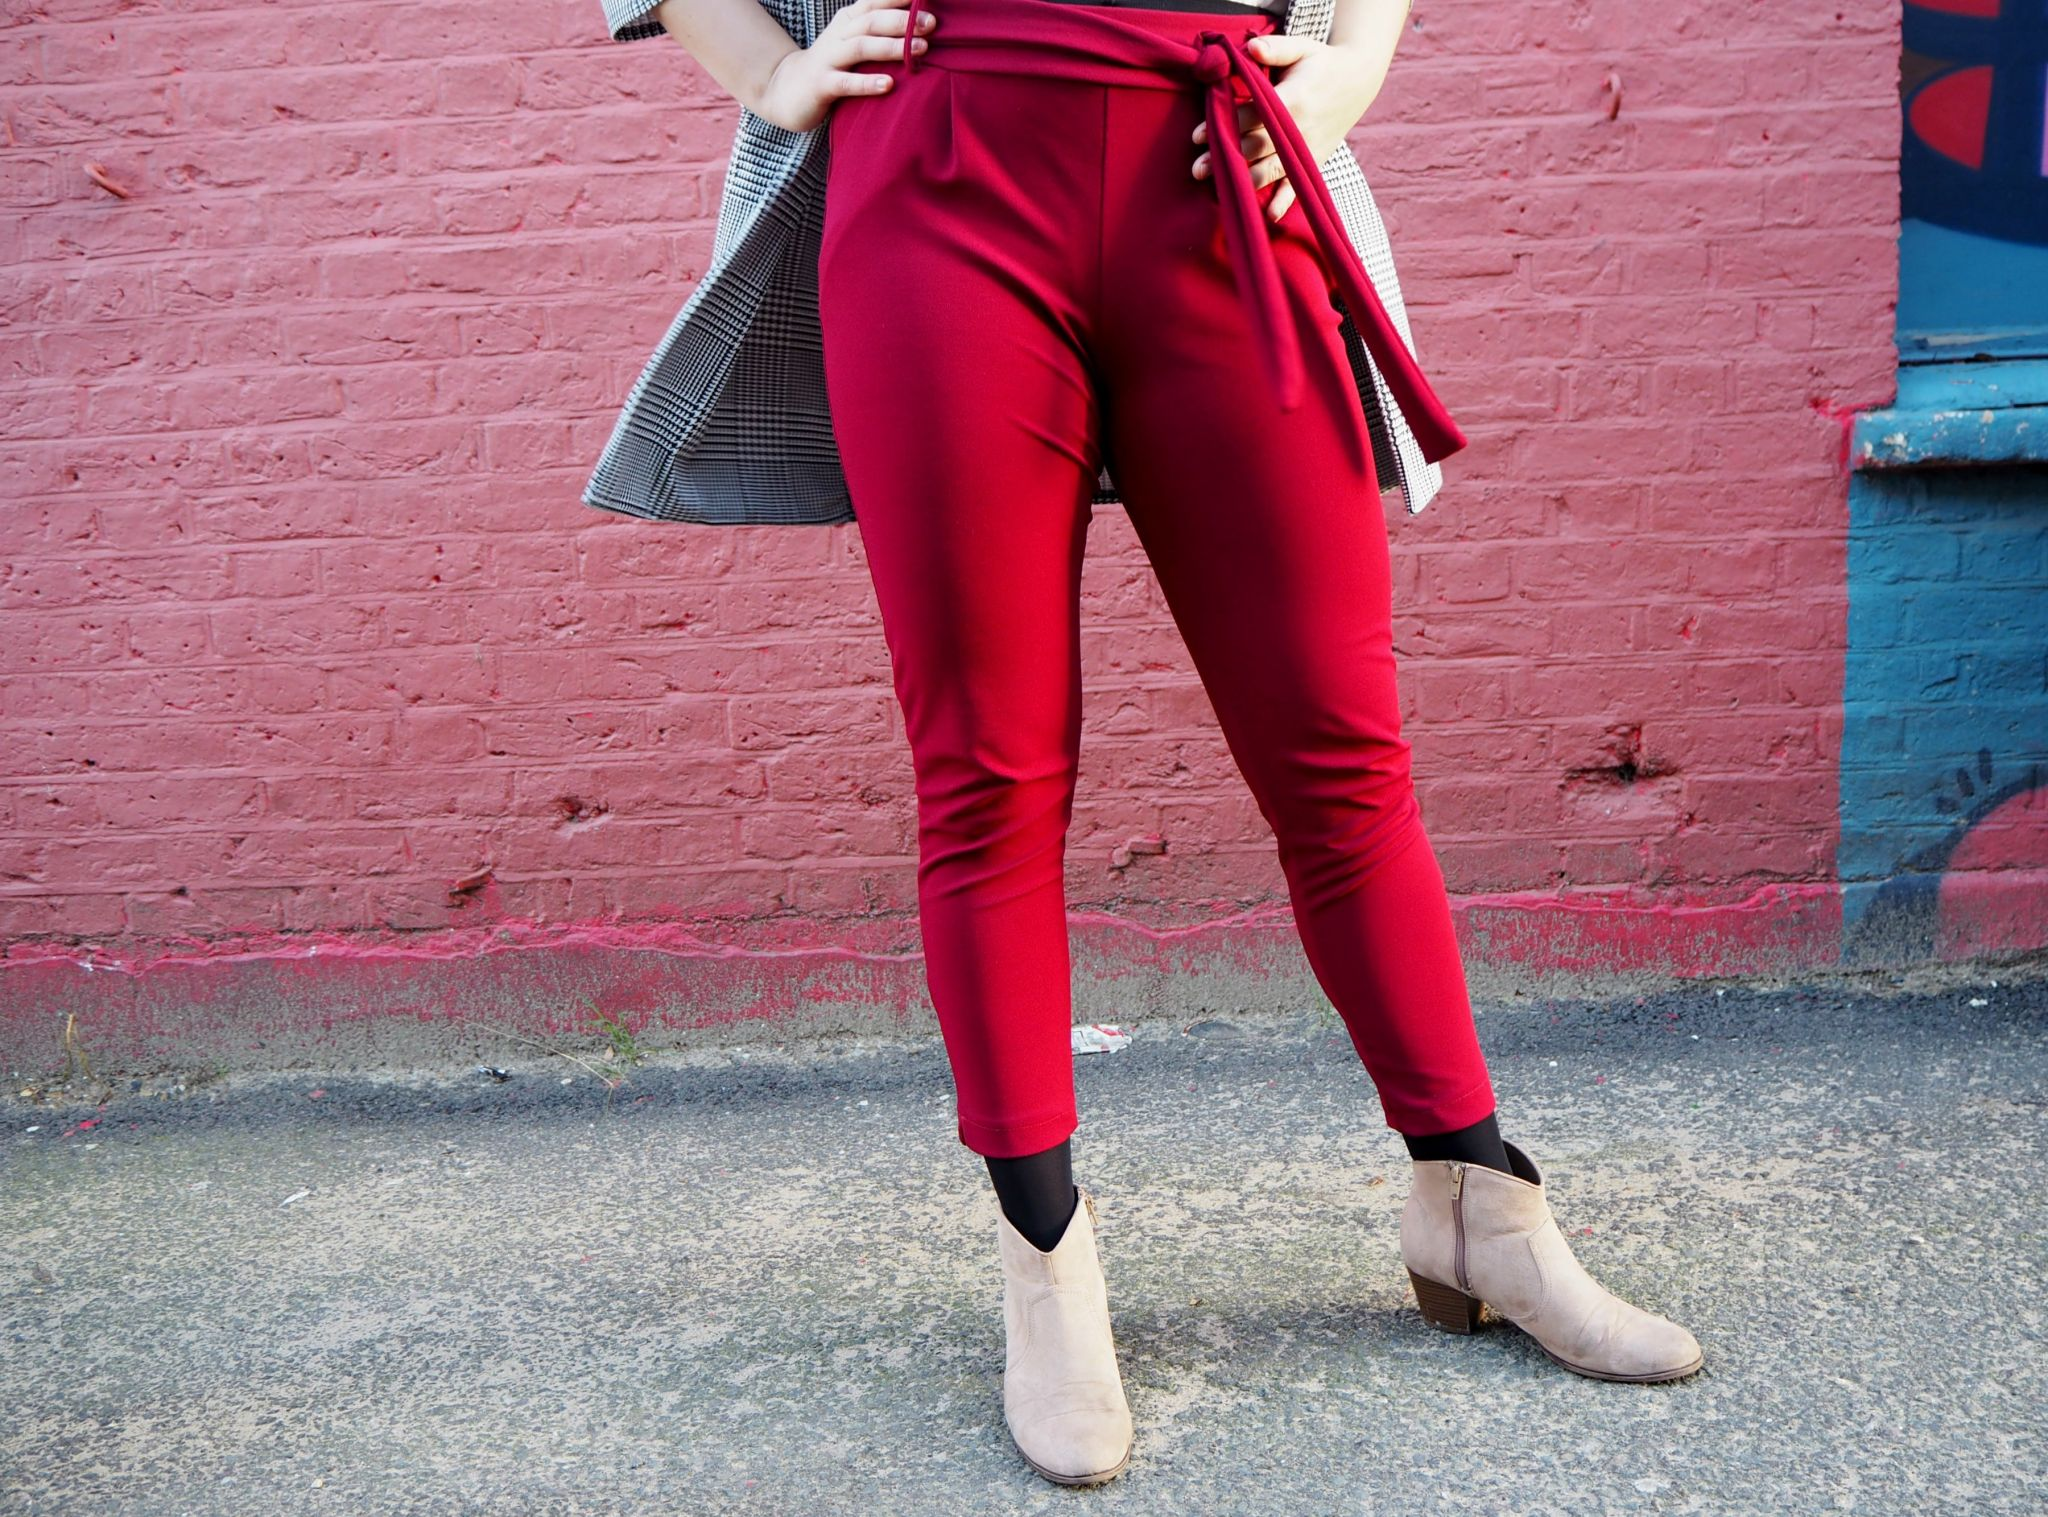 Red Trousers and Boots